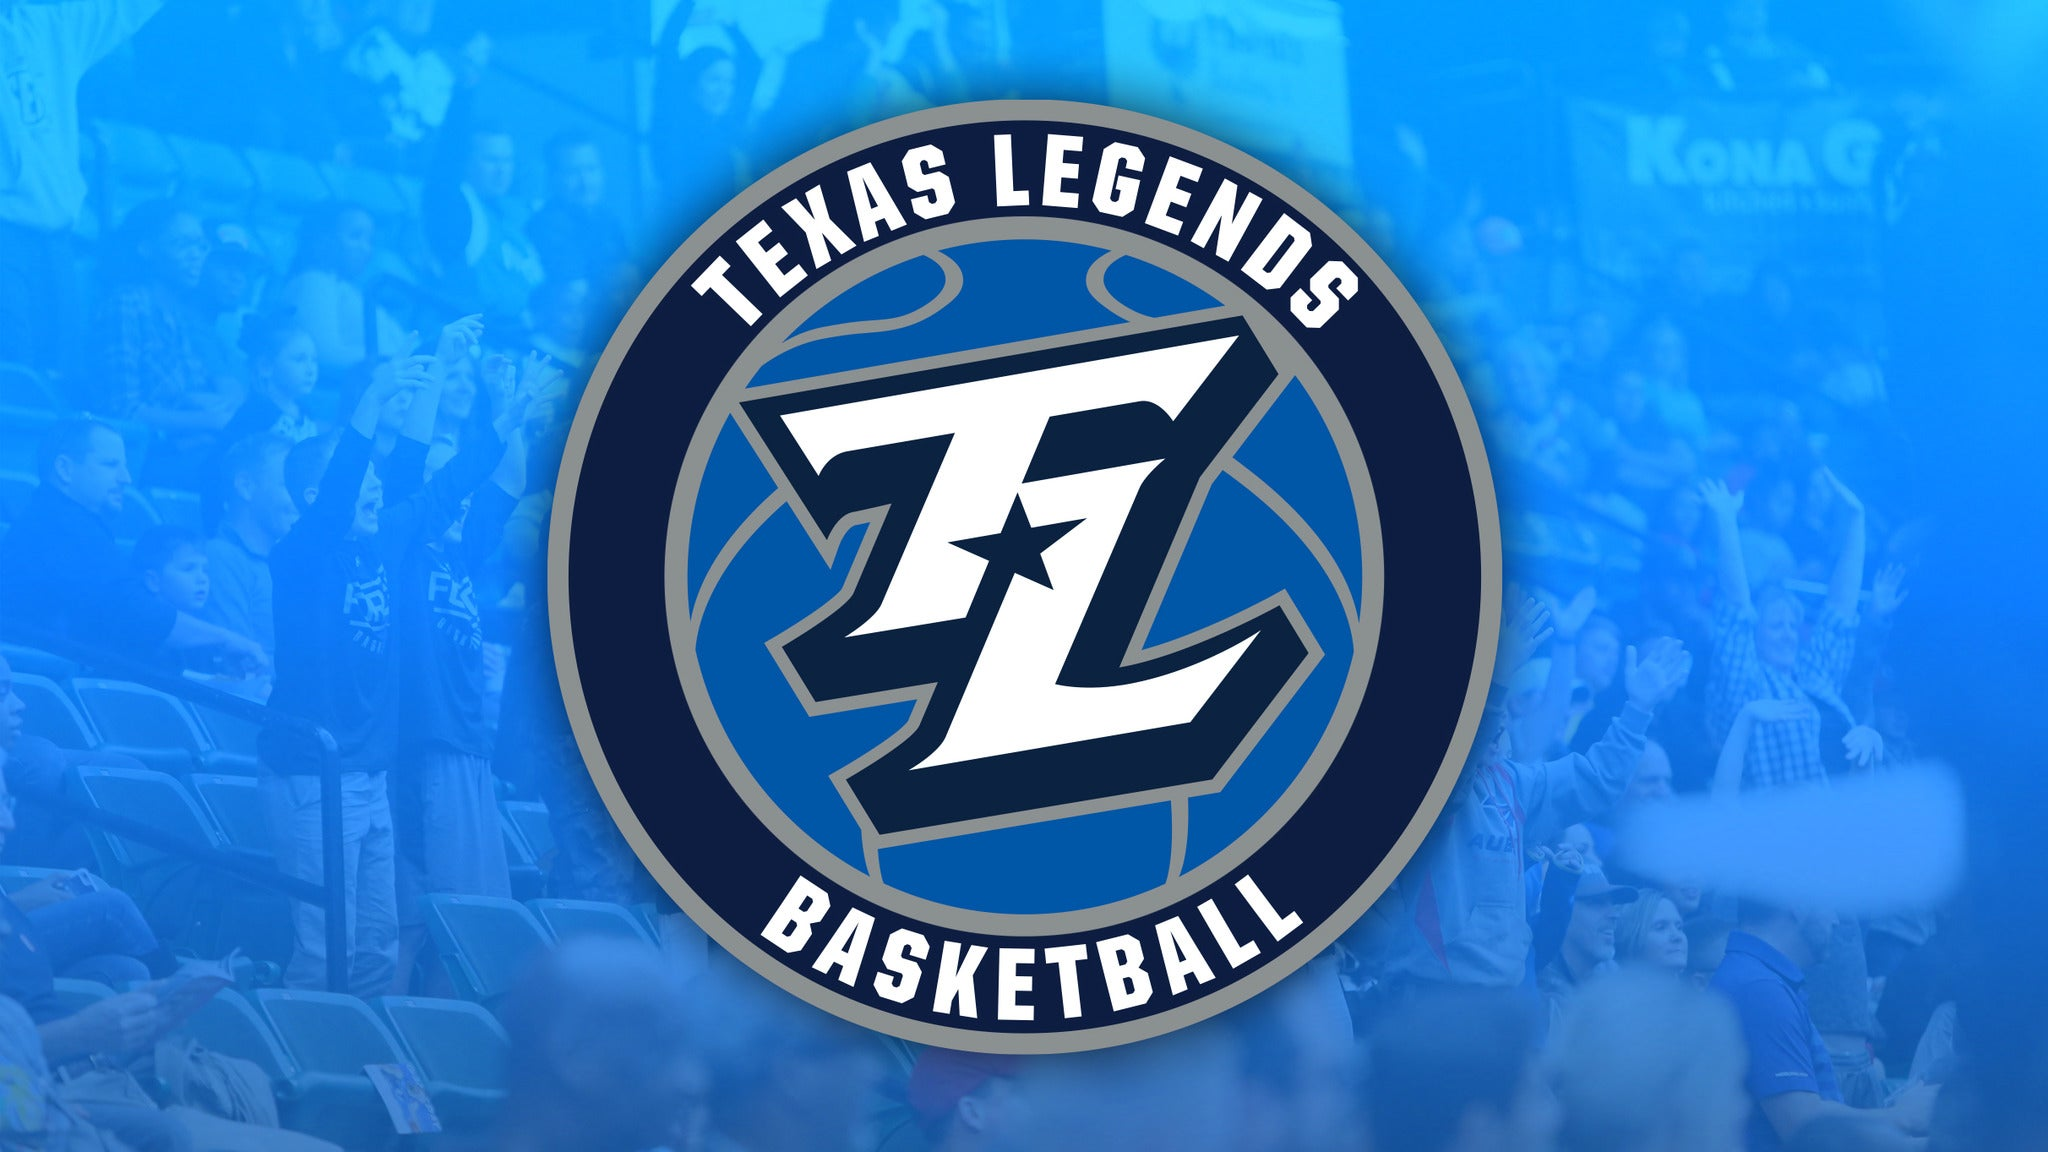 Texas Legends vs. Memphis Hustle